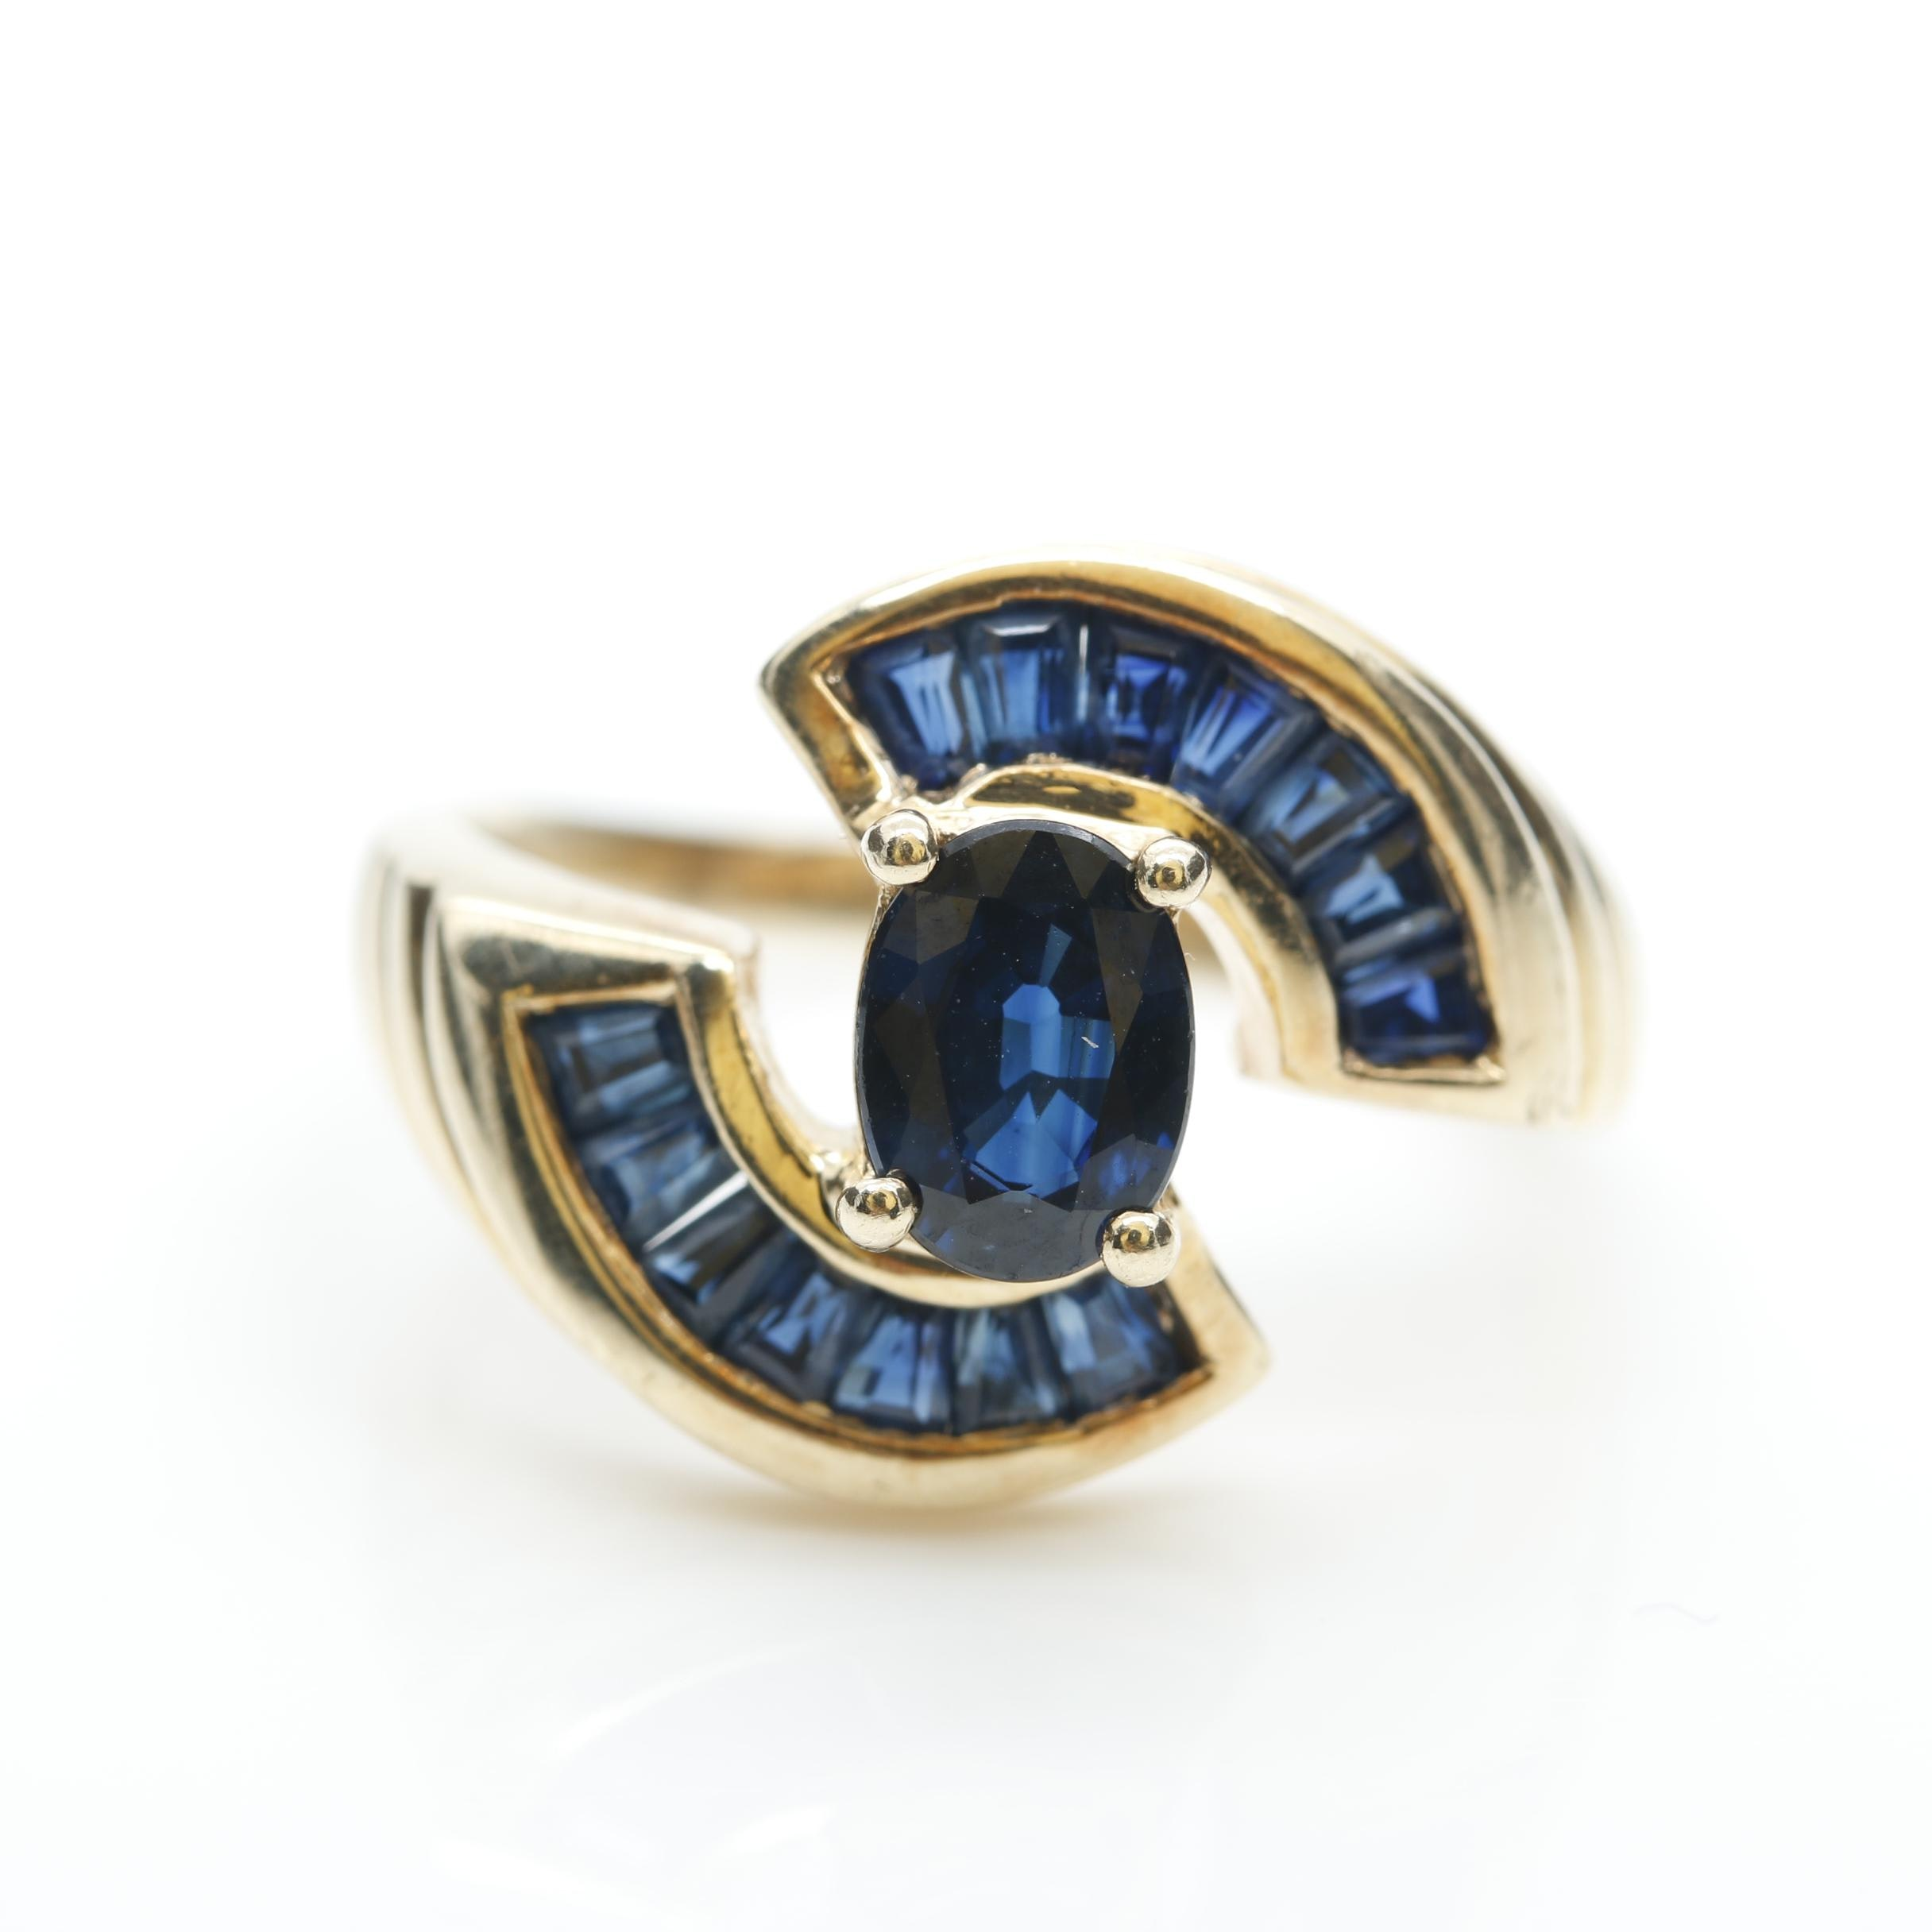 10K Yellow Gold Sapphire Ring